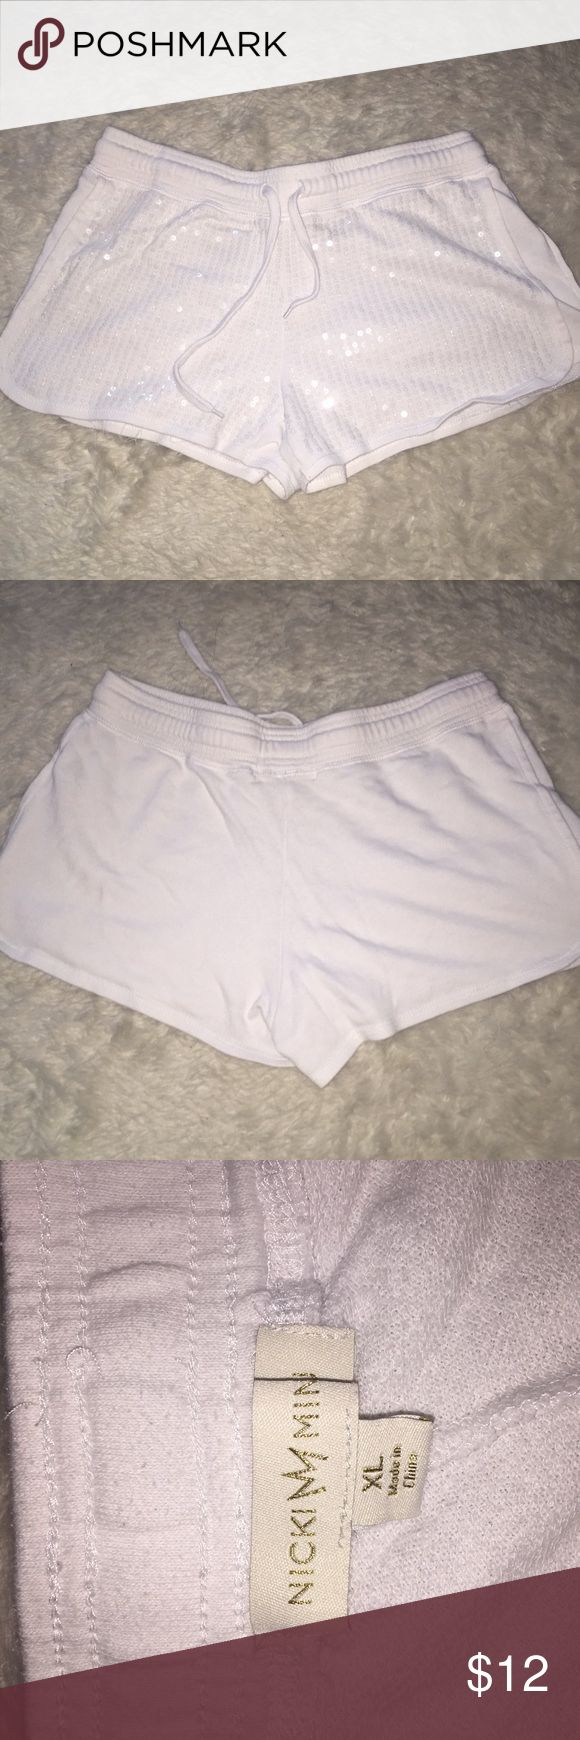 White sequence shorts Cute white short shorts by Nicki Minaji. Adorable, all the sequence is there and looks super cute when worn to work out class! Nicki Minaj Shorts